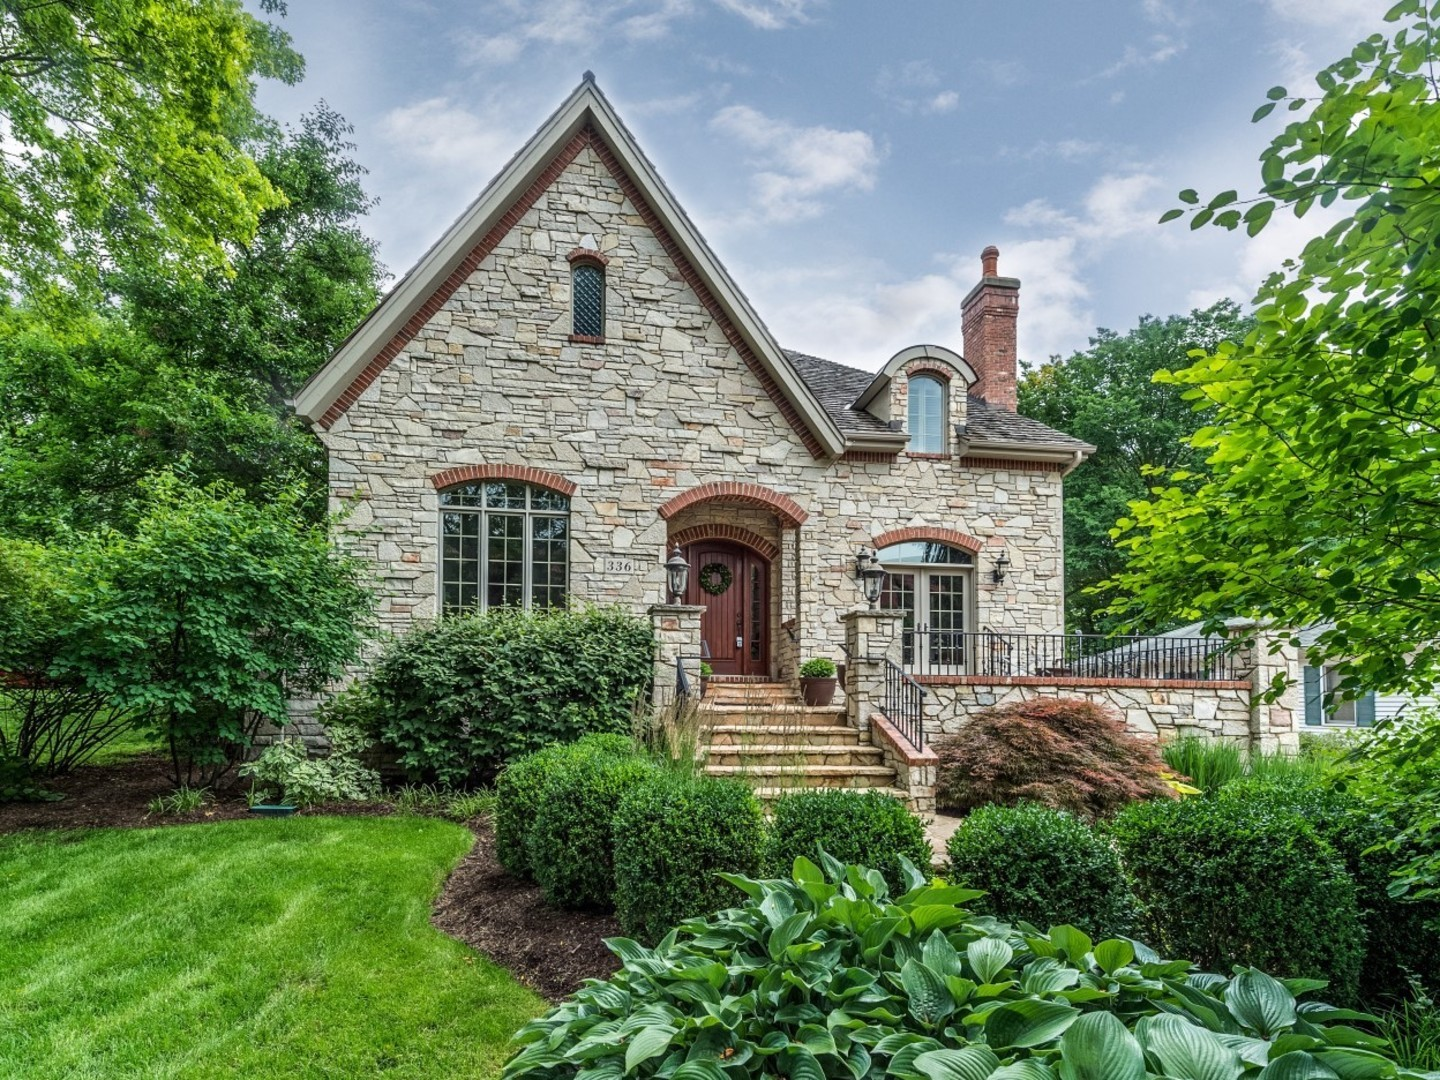 336 South Loomis Street, Naperville IL 60540